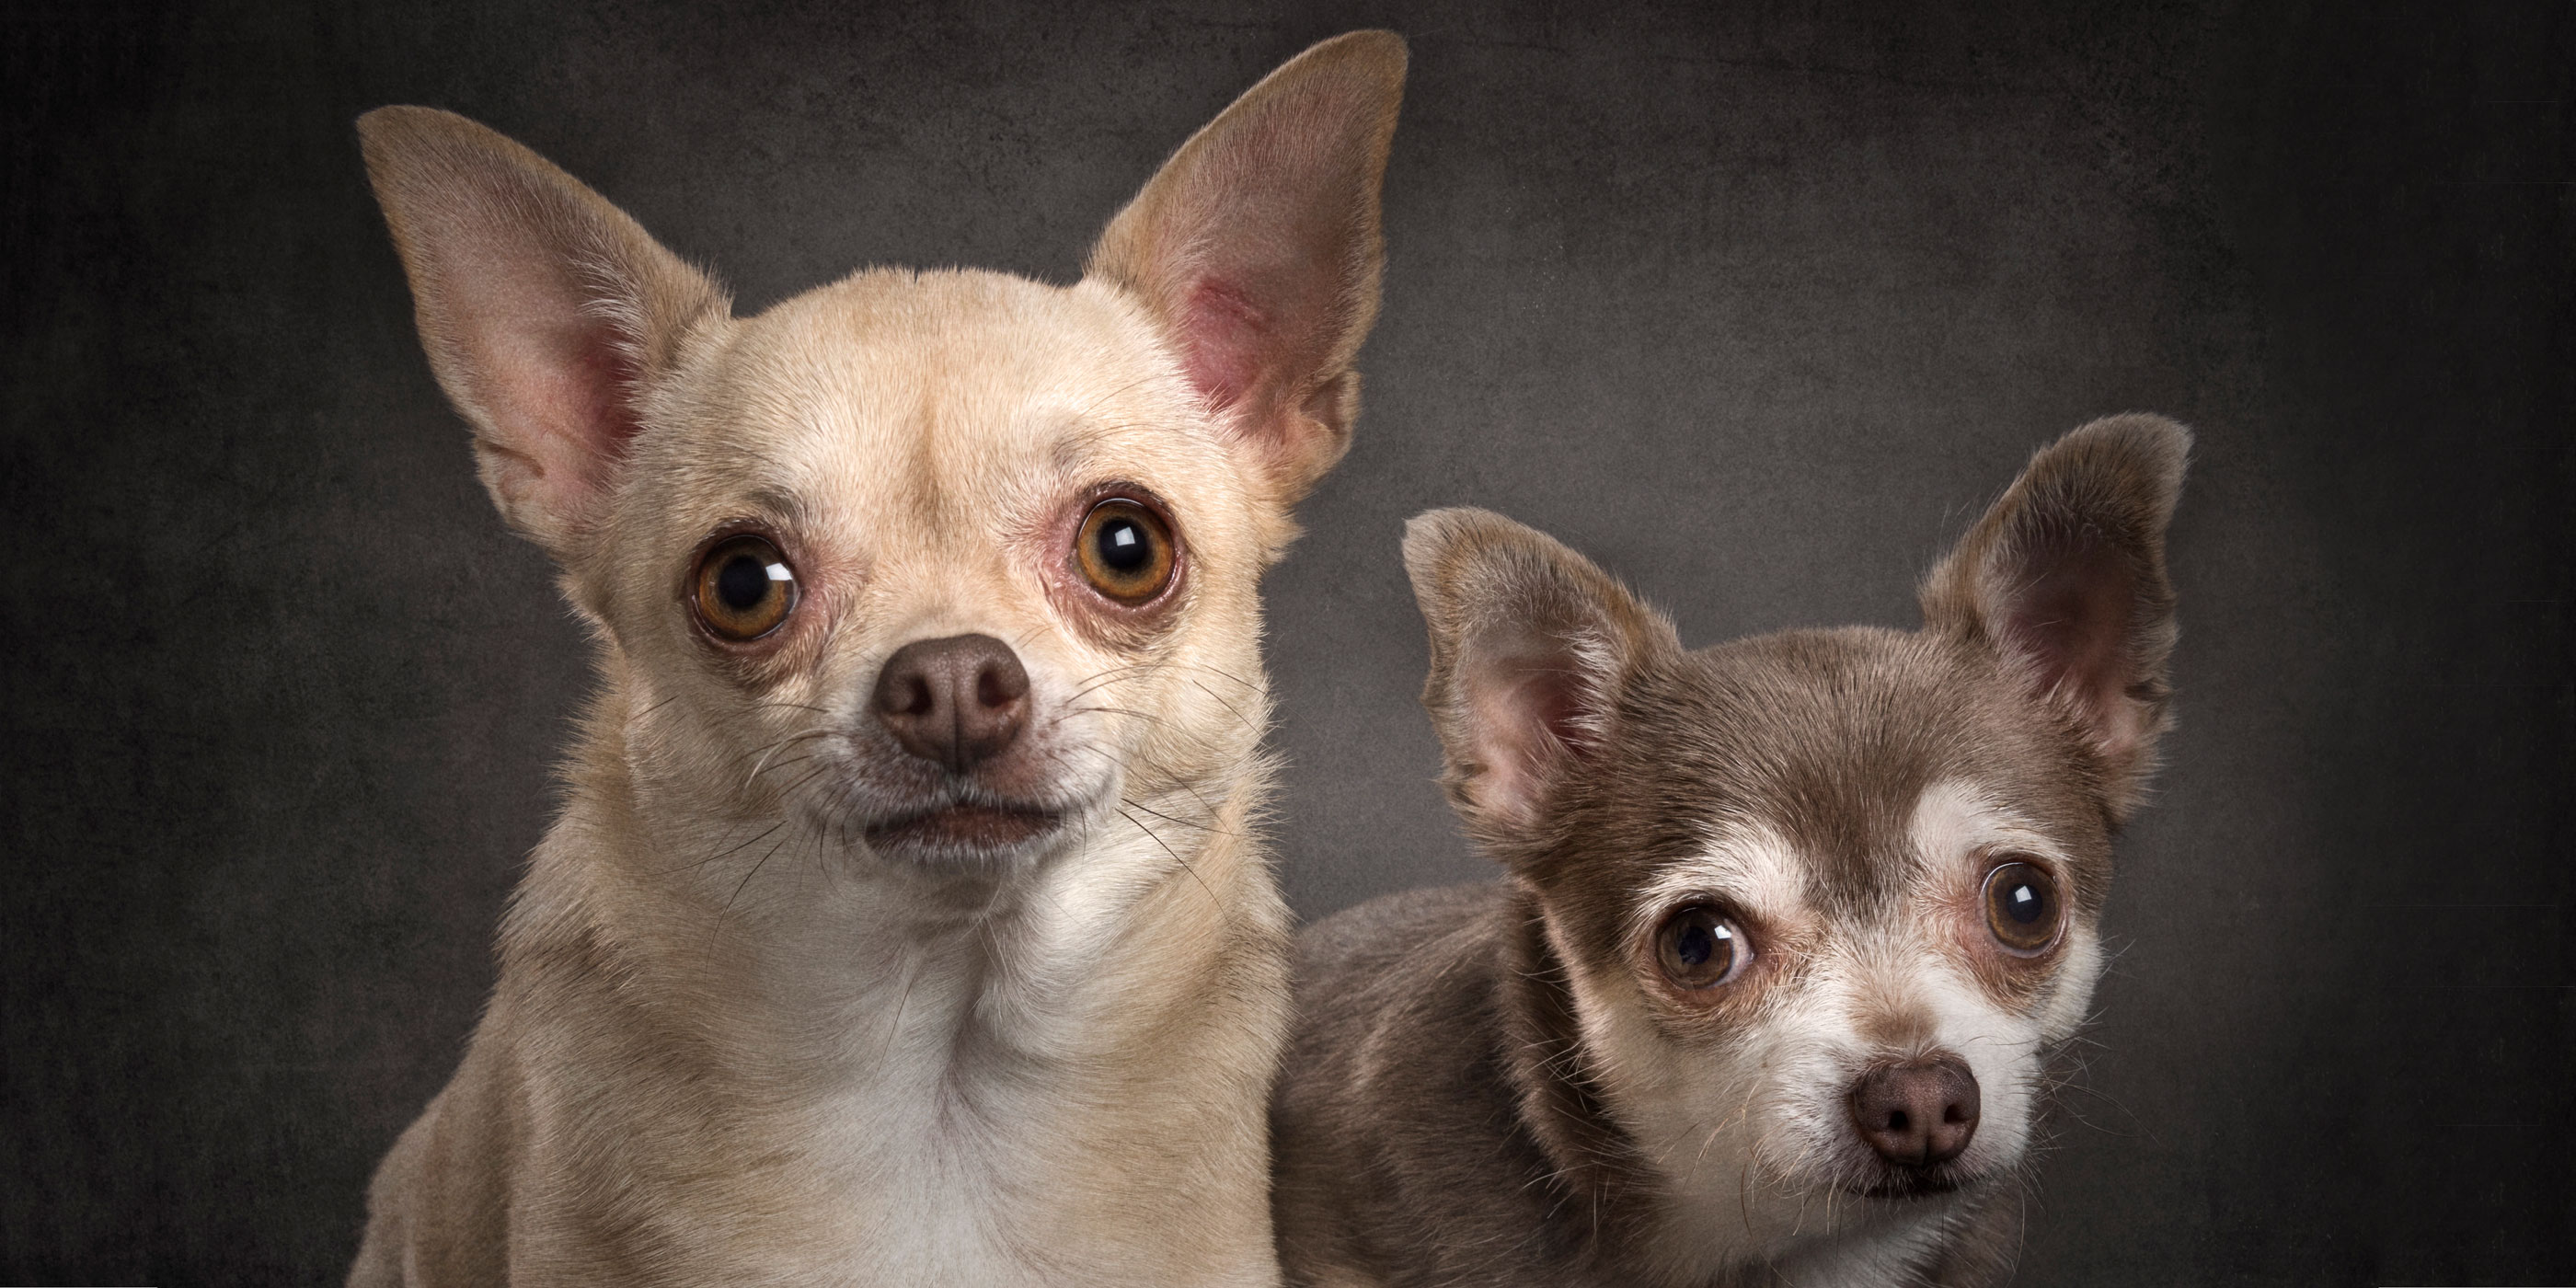 pair of chihuahuas sitting close together